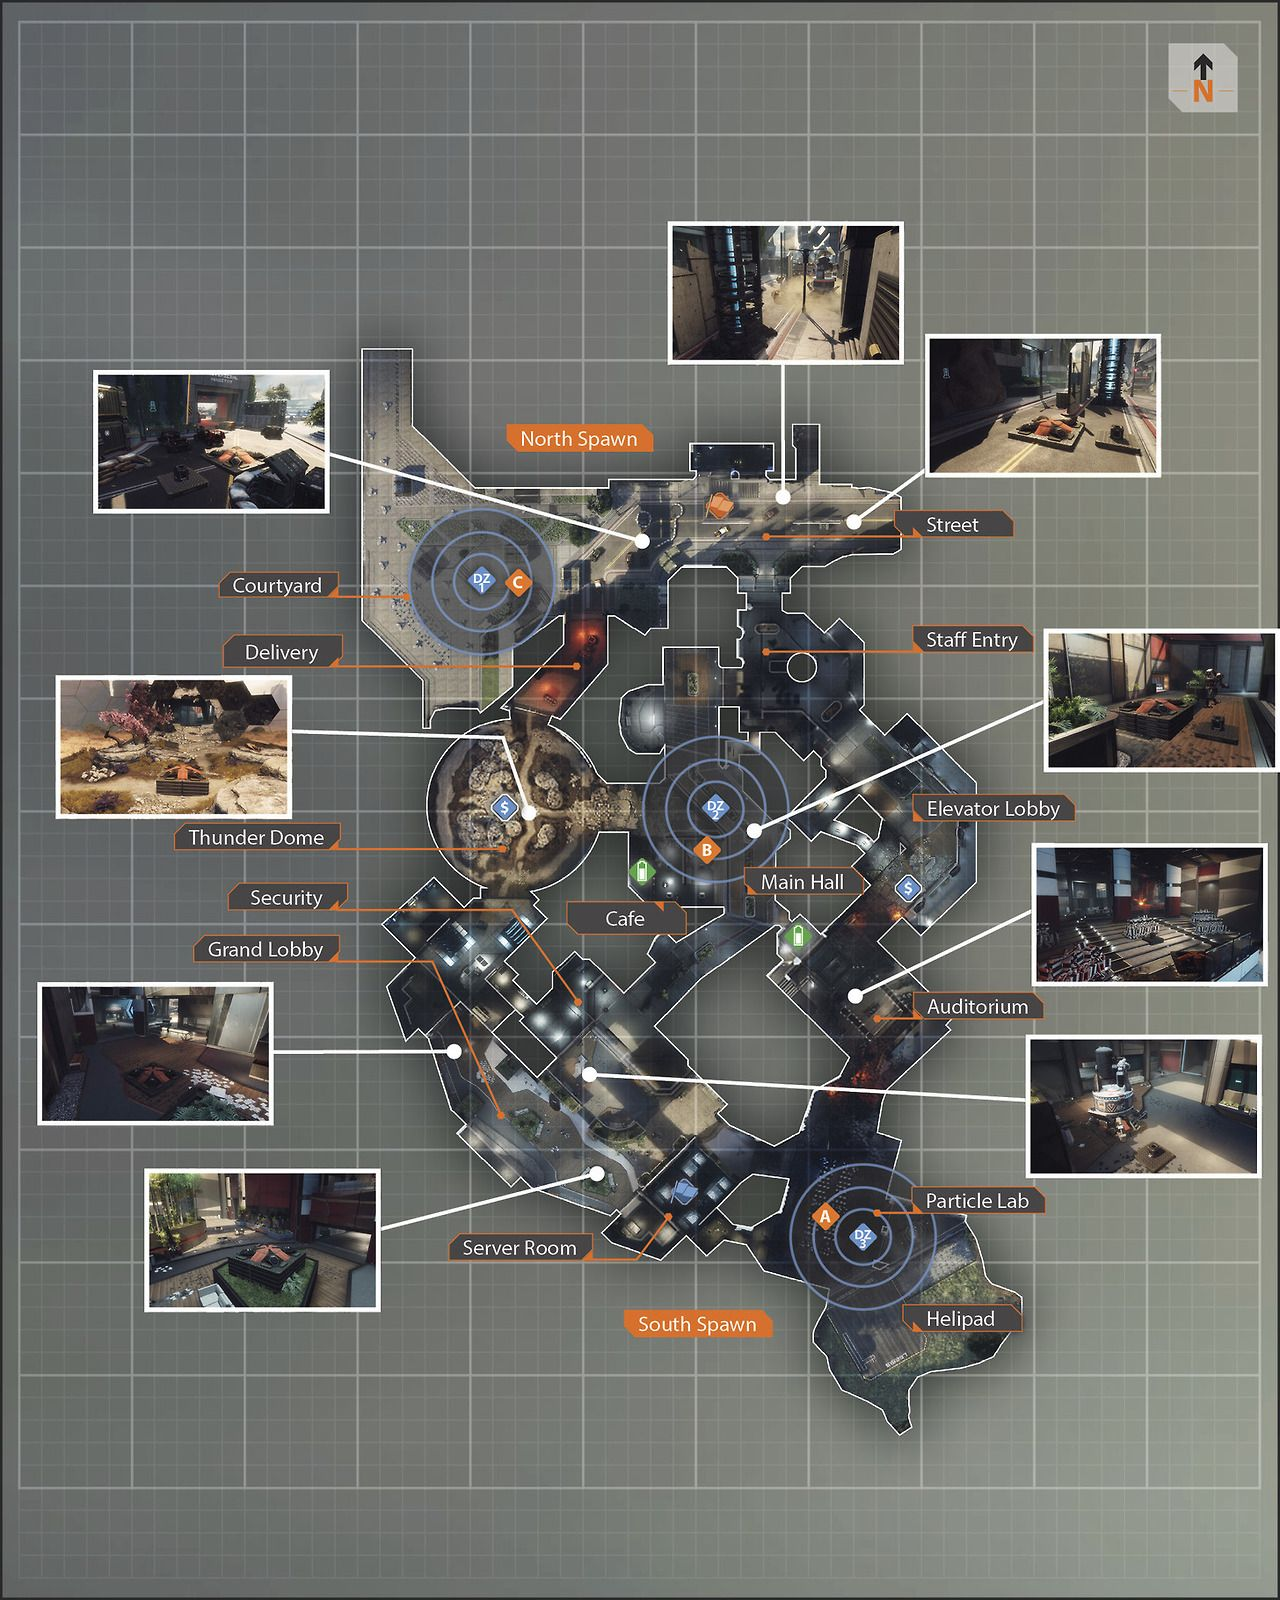 Destiny 2 Leviathan Underbelly Map : destiny, leviathan, underbelly, Titanfall, Paper,, Design,